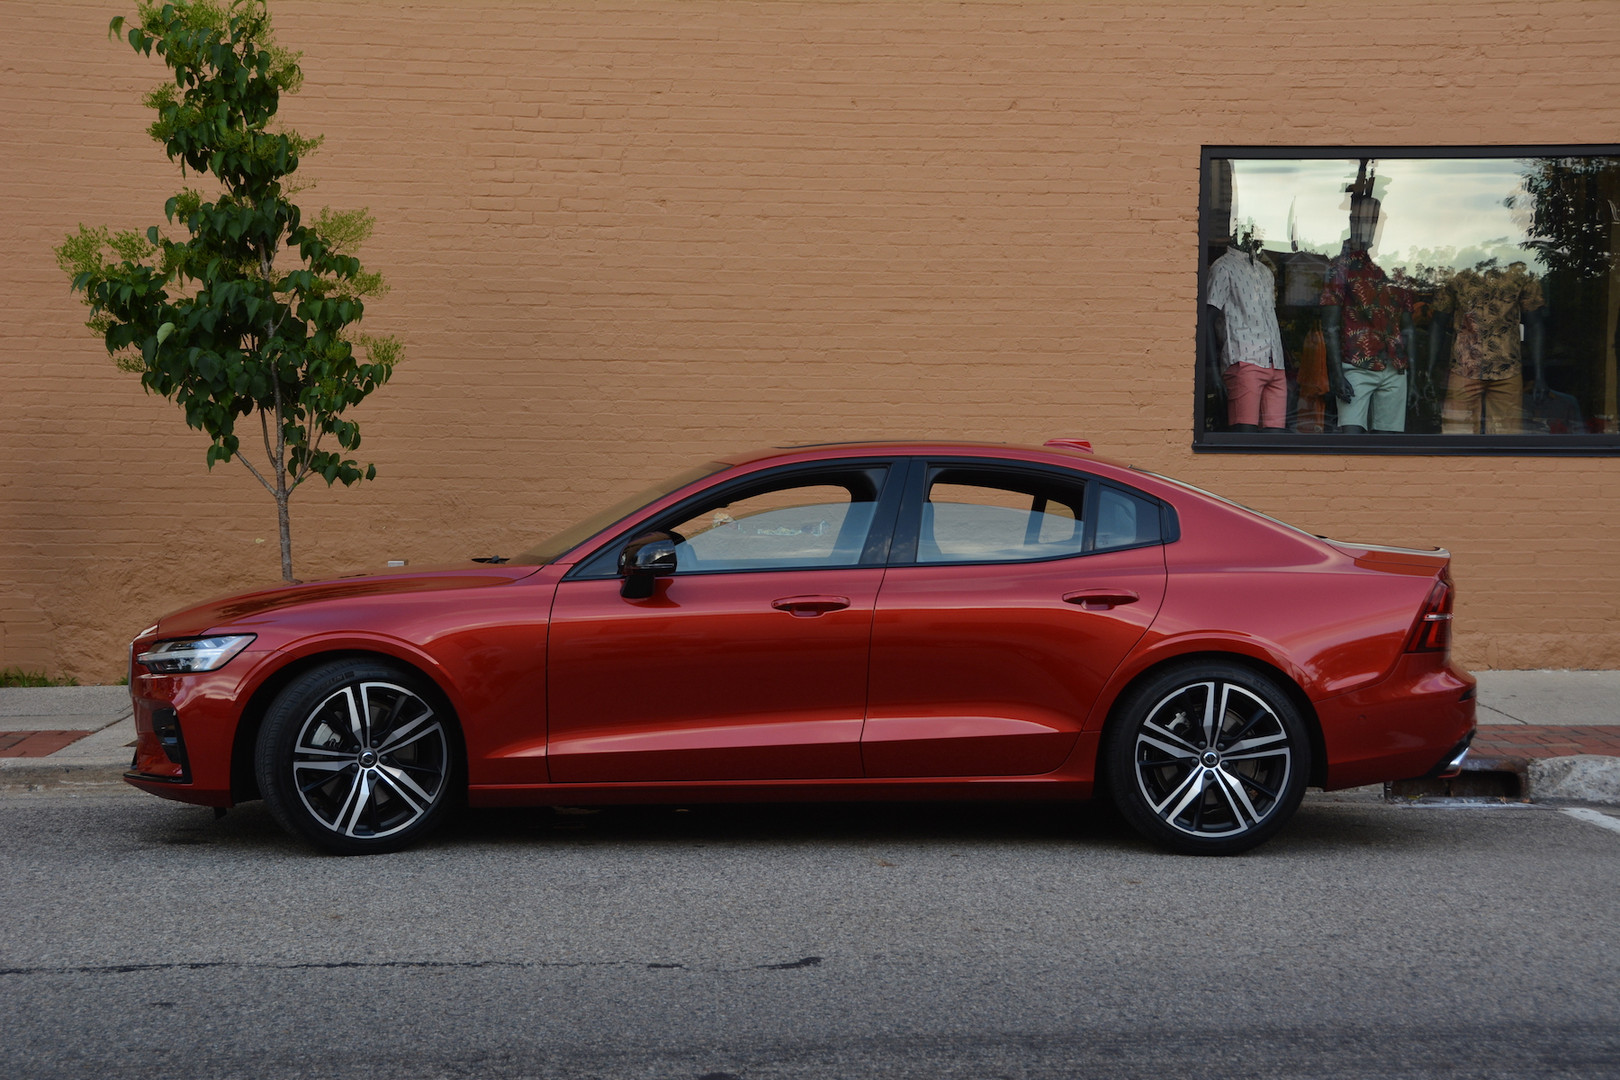 2019 Volvo S60 Side View